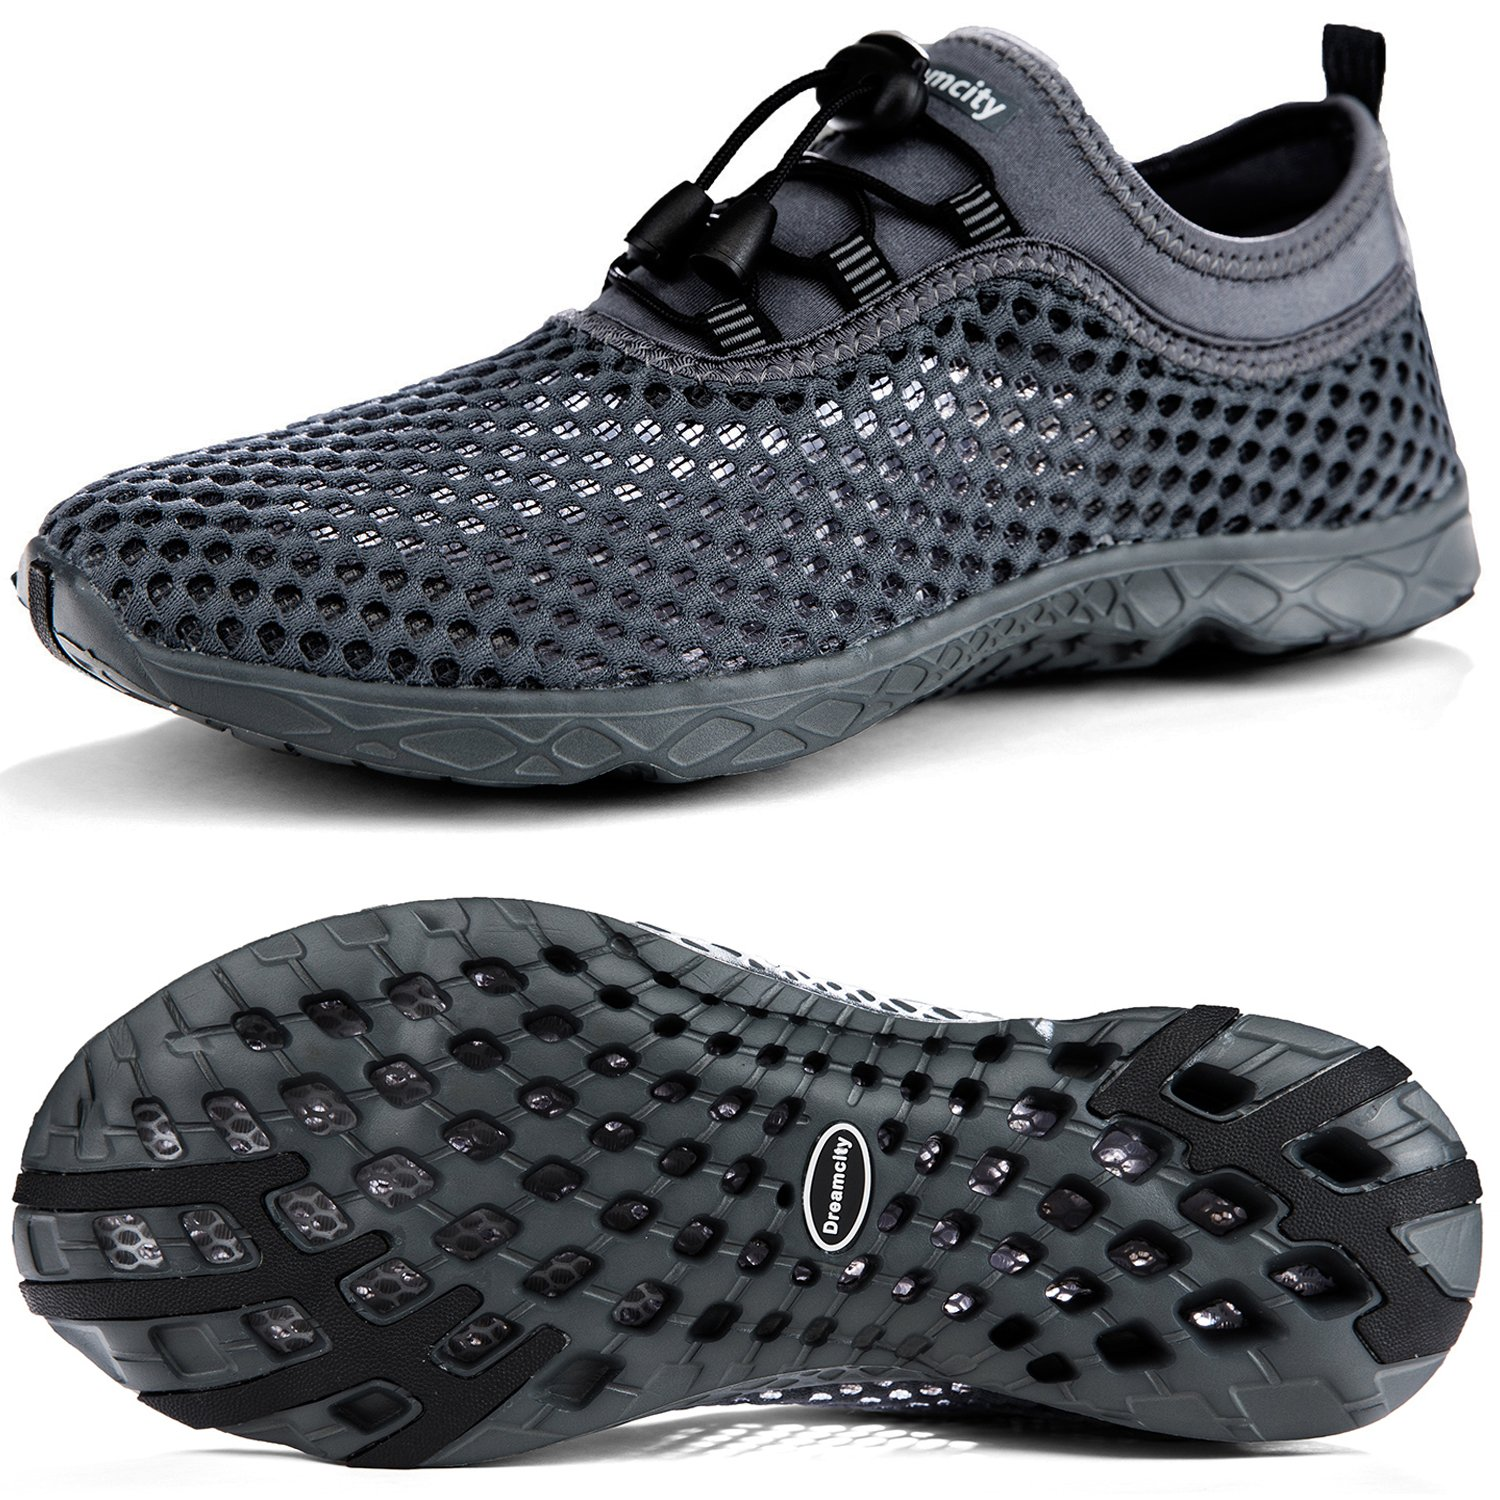 Dreamcity Men's Water Shoes Athletic Sport Lightweight Walking Shoes by Dreamcity